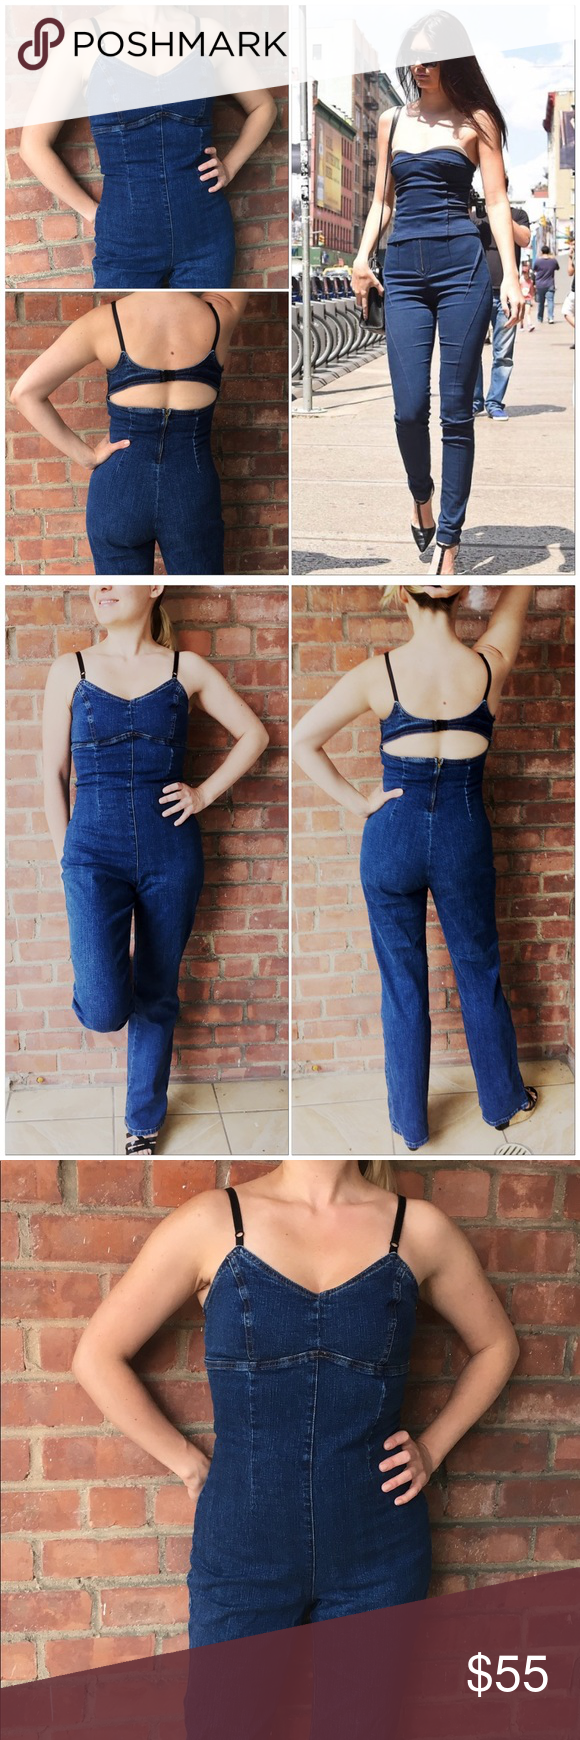 4c2646d0a463 💣Very Sexy Jeans Jumpsuit with Cutout Back